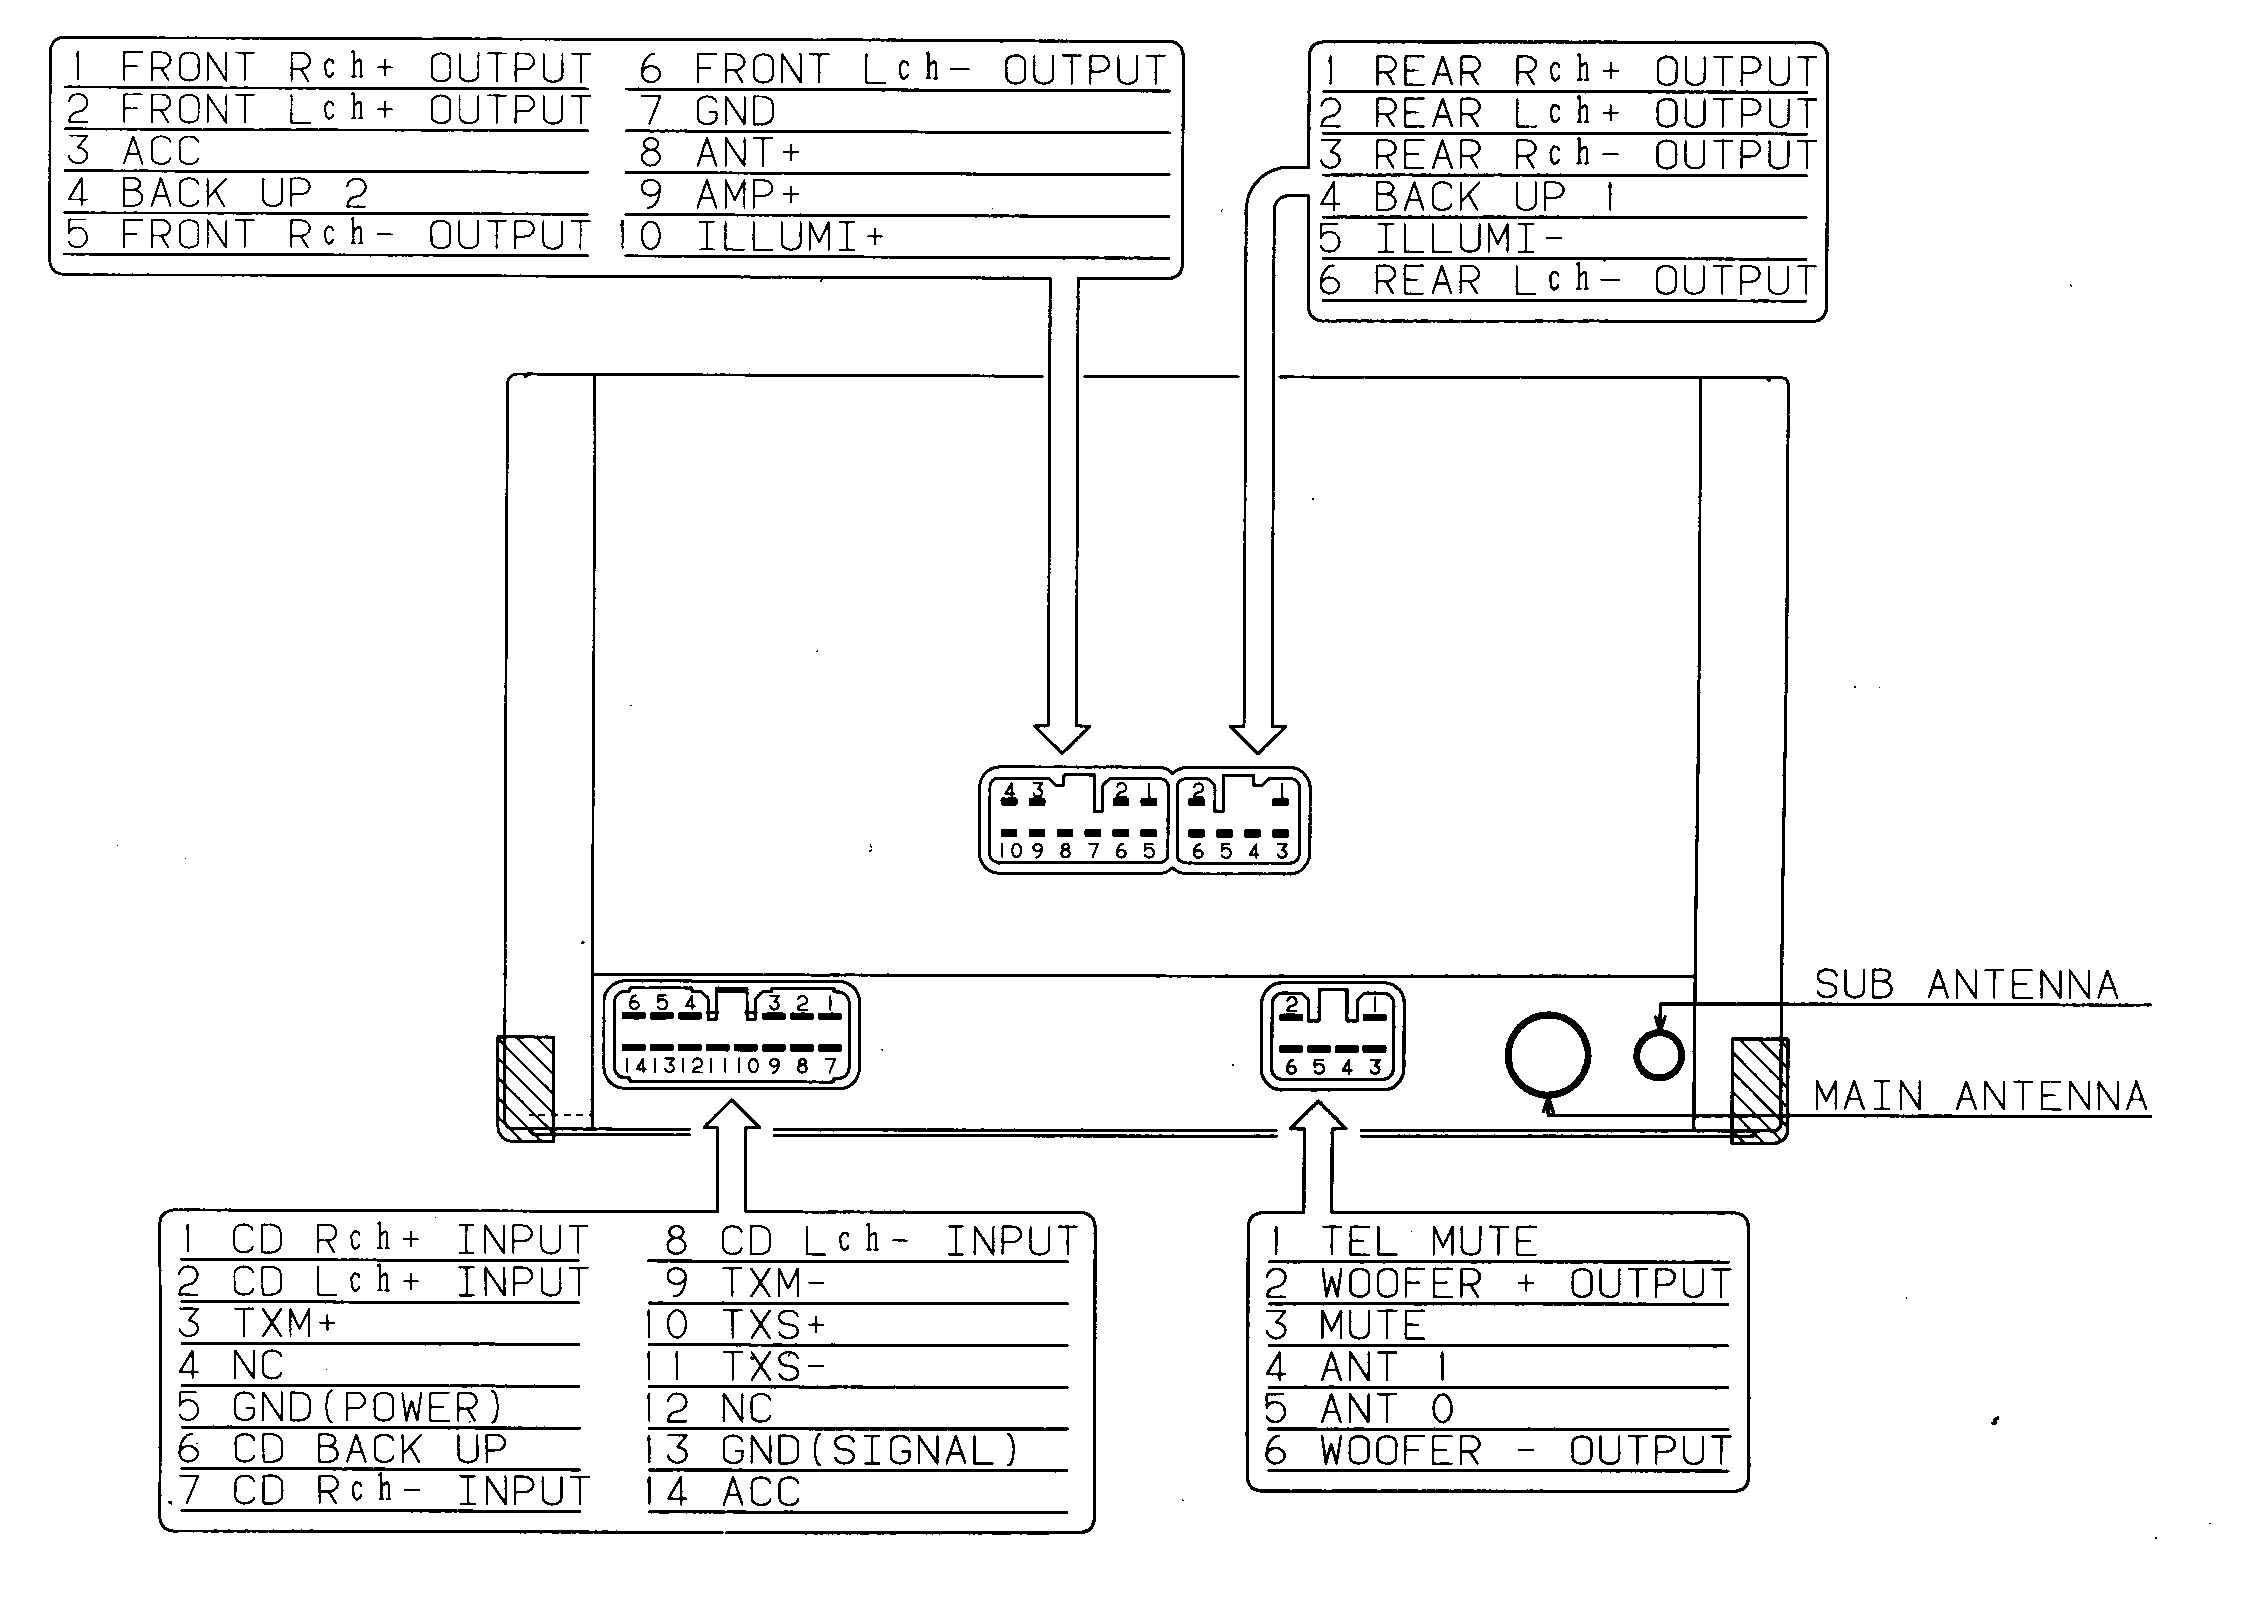 2006 Lexus Gs300 Radio Wiring Diagram Wiring Diagram & Fuse Box \u2022 BMW  325I Diagram Lexus Gs300 Radio Wire Diagram